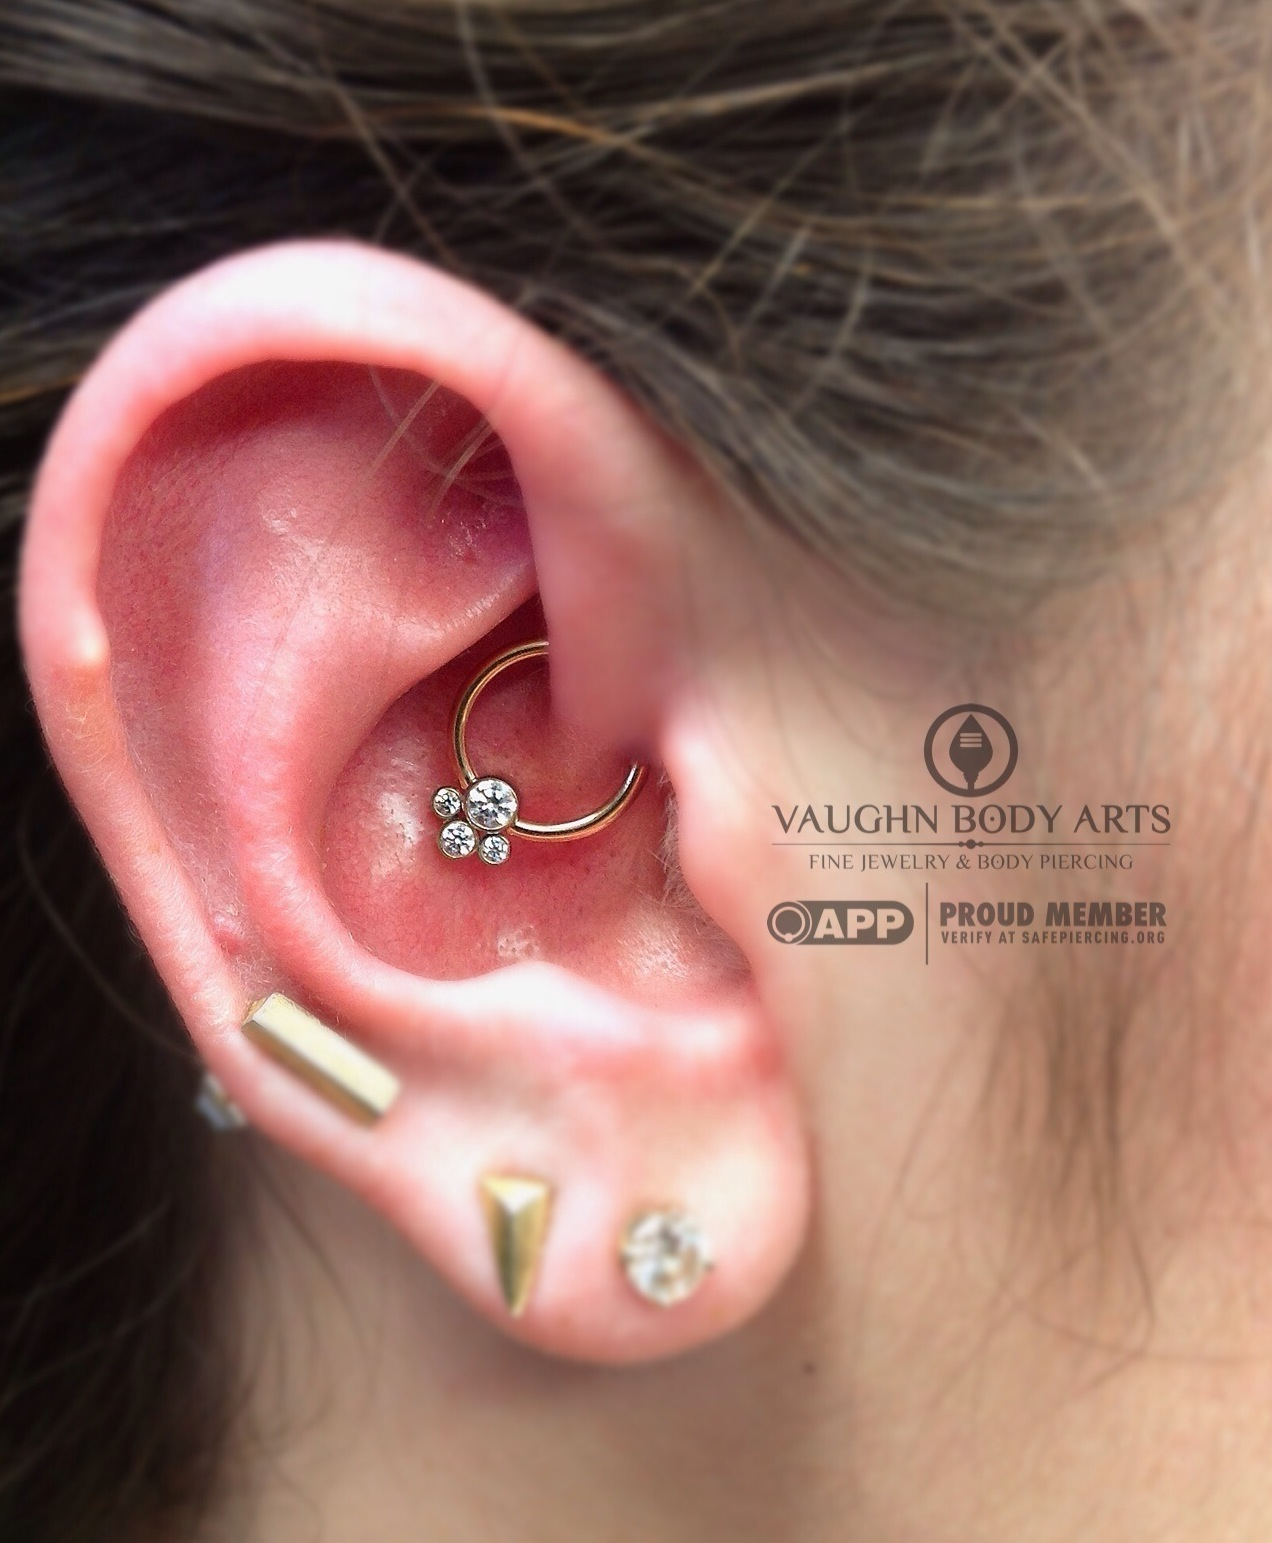 Daith piercing with a 14k yellow gold captive bead ring from BVLA holding a titanium gem cluster from Anatometal.